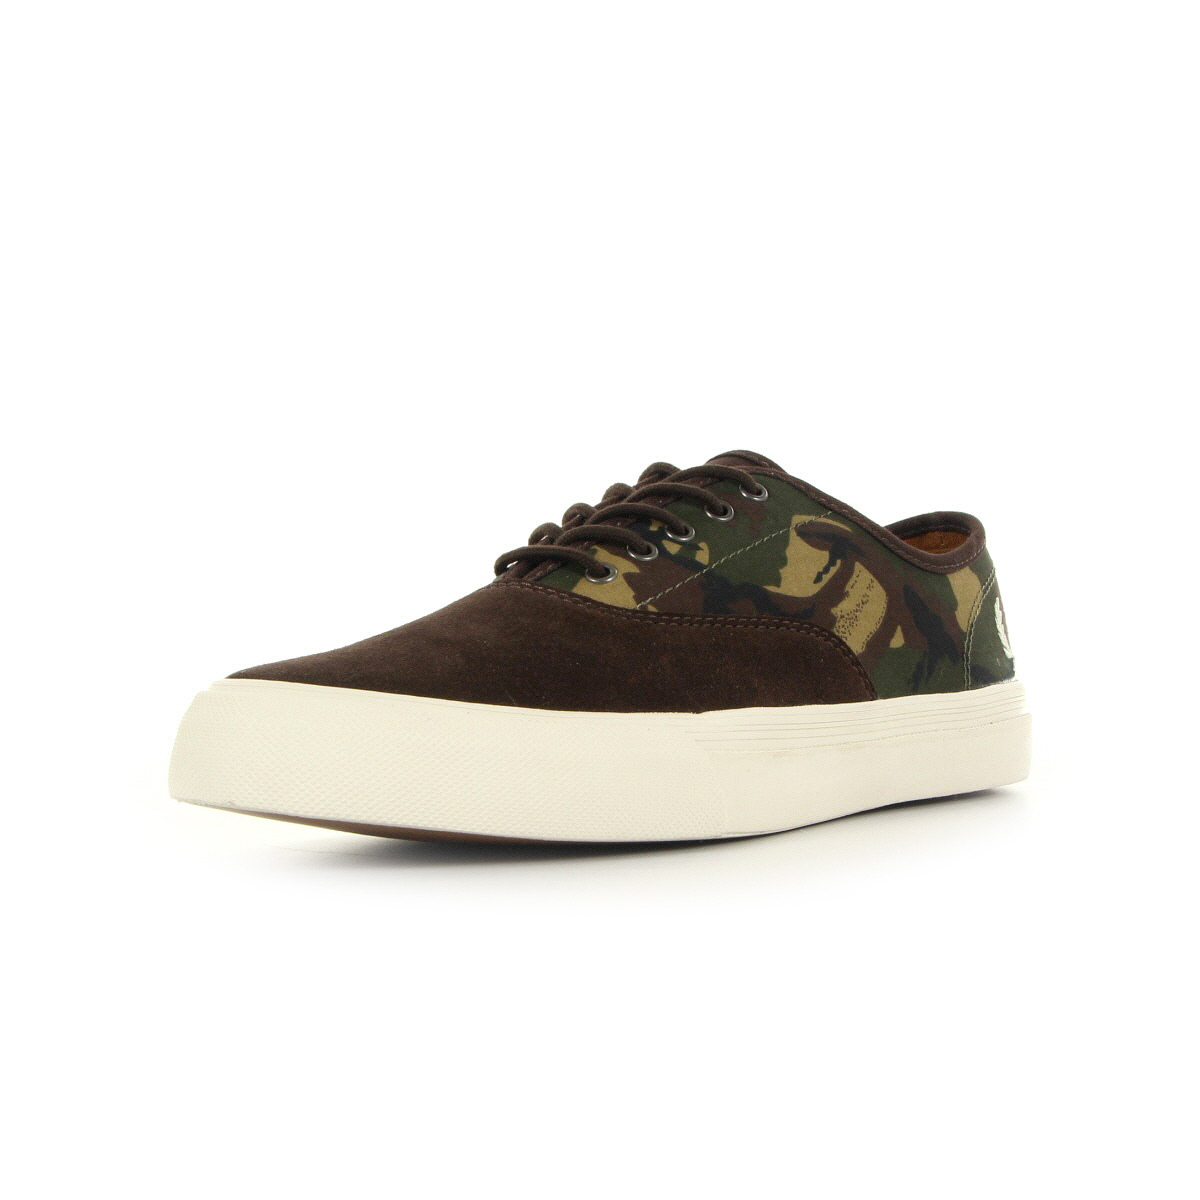 sneaker schuhe fred perry herren clarence camo braun leder. Black Bedroom Furniture Sets. Home Design Ideas